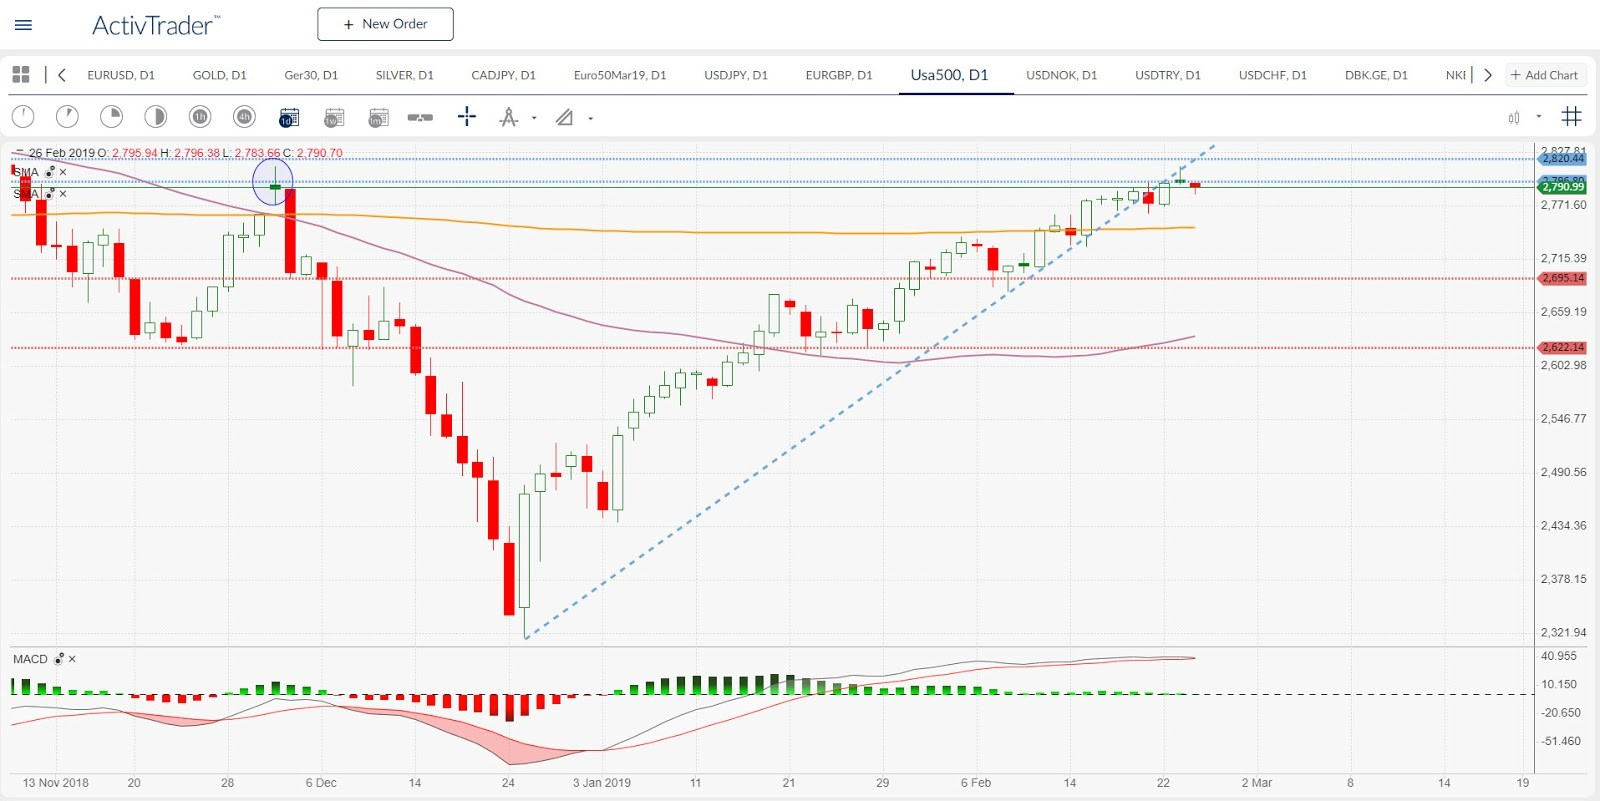 US500 Daily Chart   Source: ActivTrader